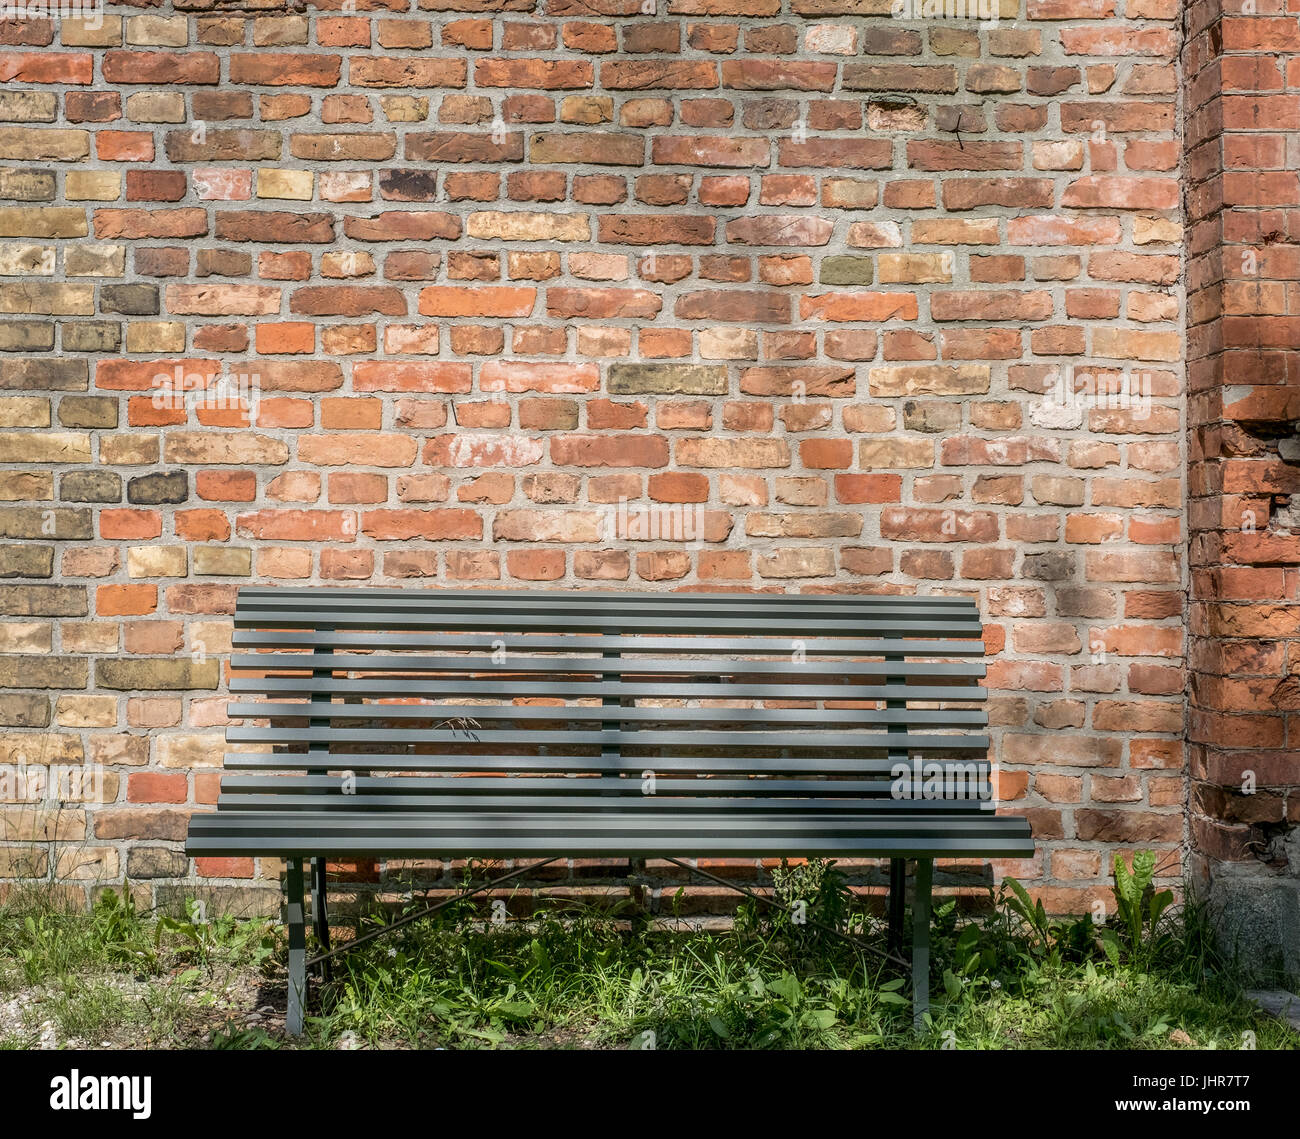 Empty Wooden Bench With Vintage Brick Wall Background